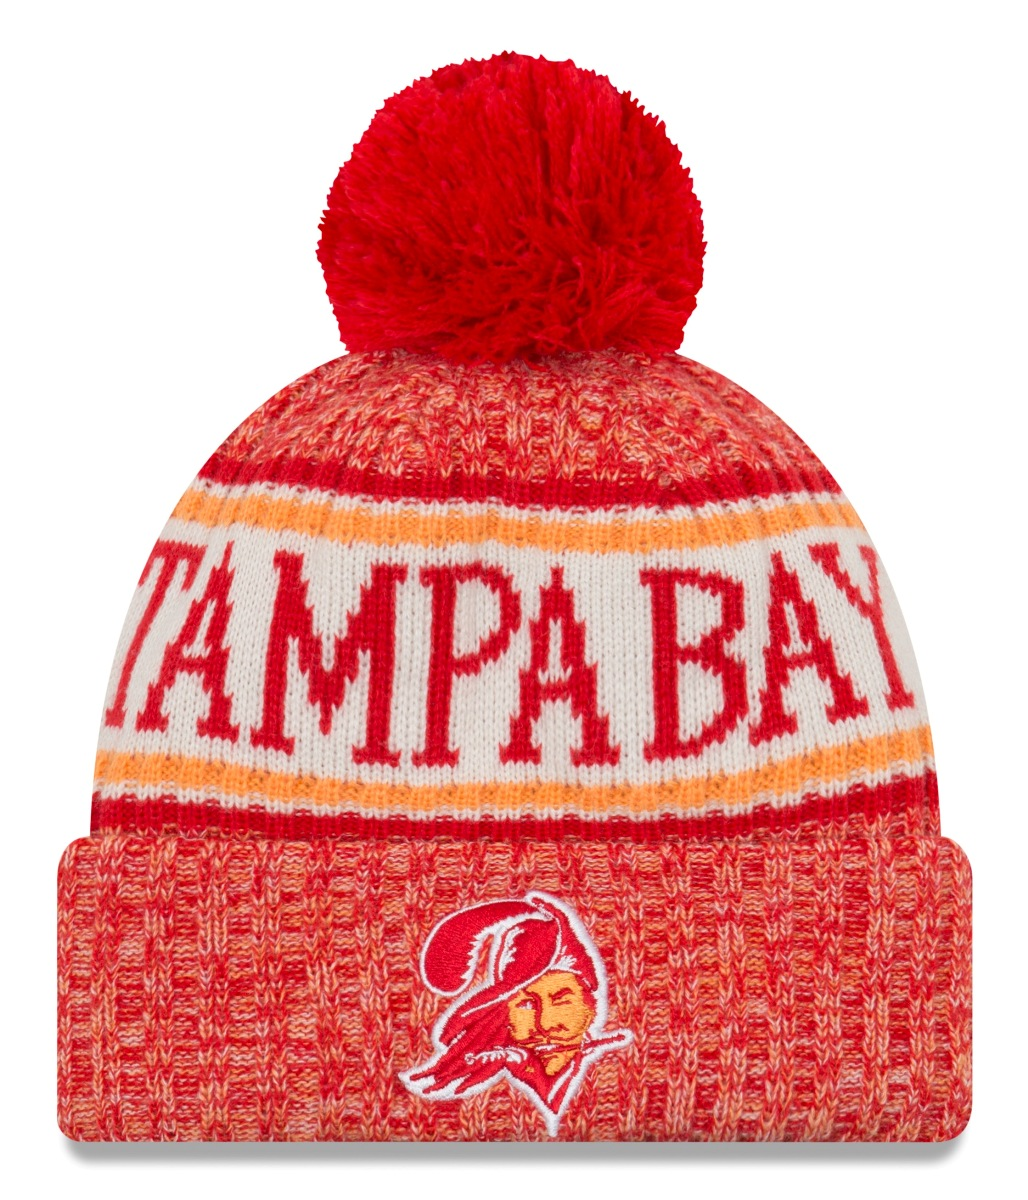 Tampa Bay Buccaneers New Era 2018 NFL Sideline On Field Historic Sport Knit Hat